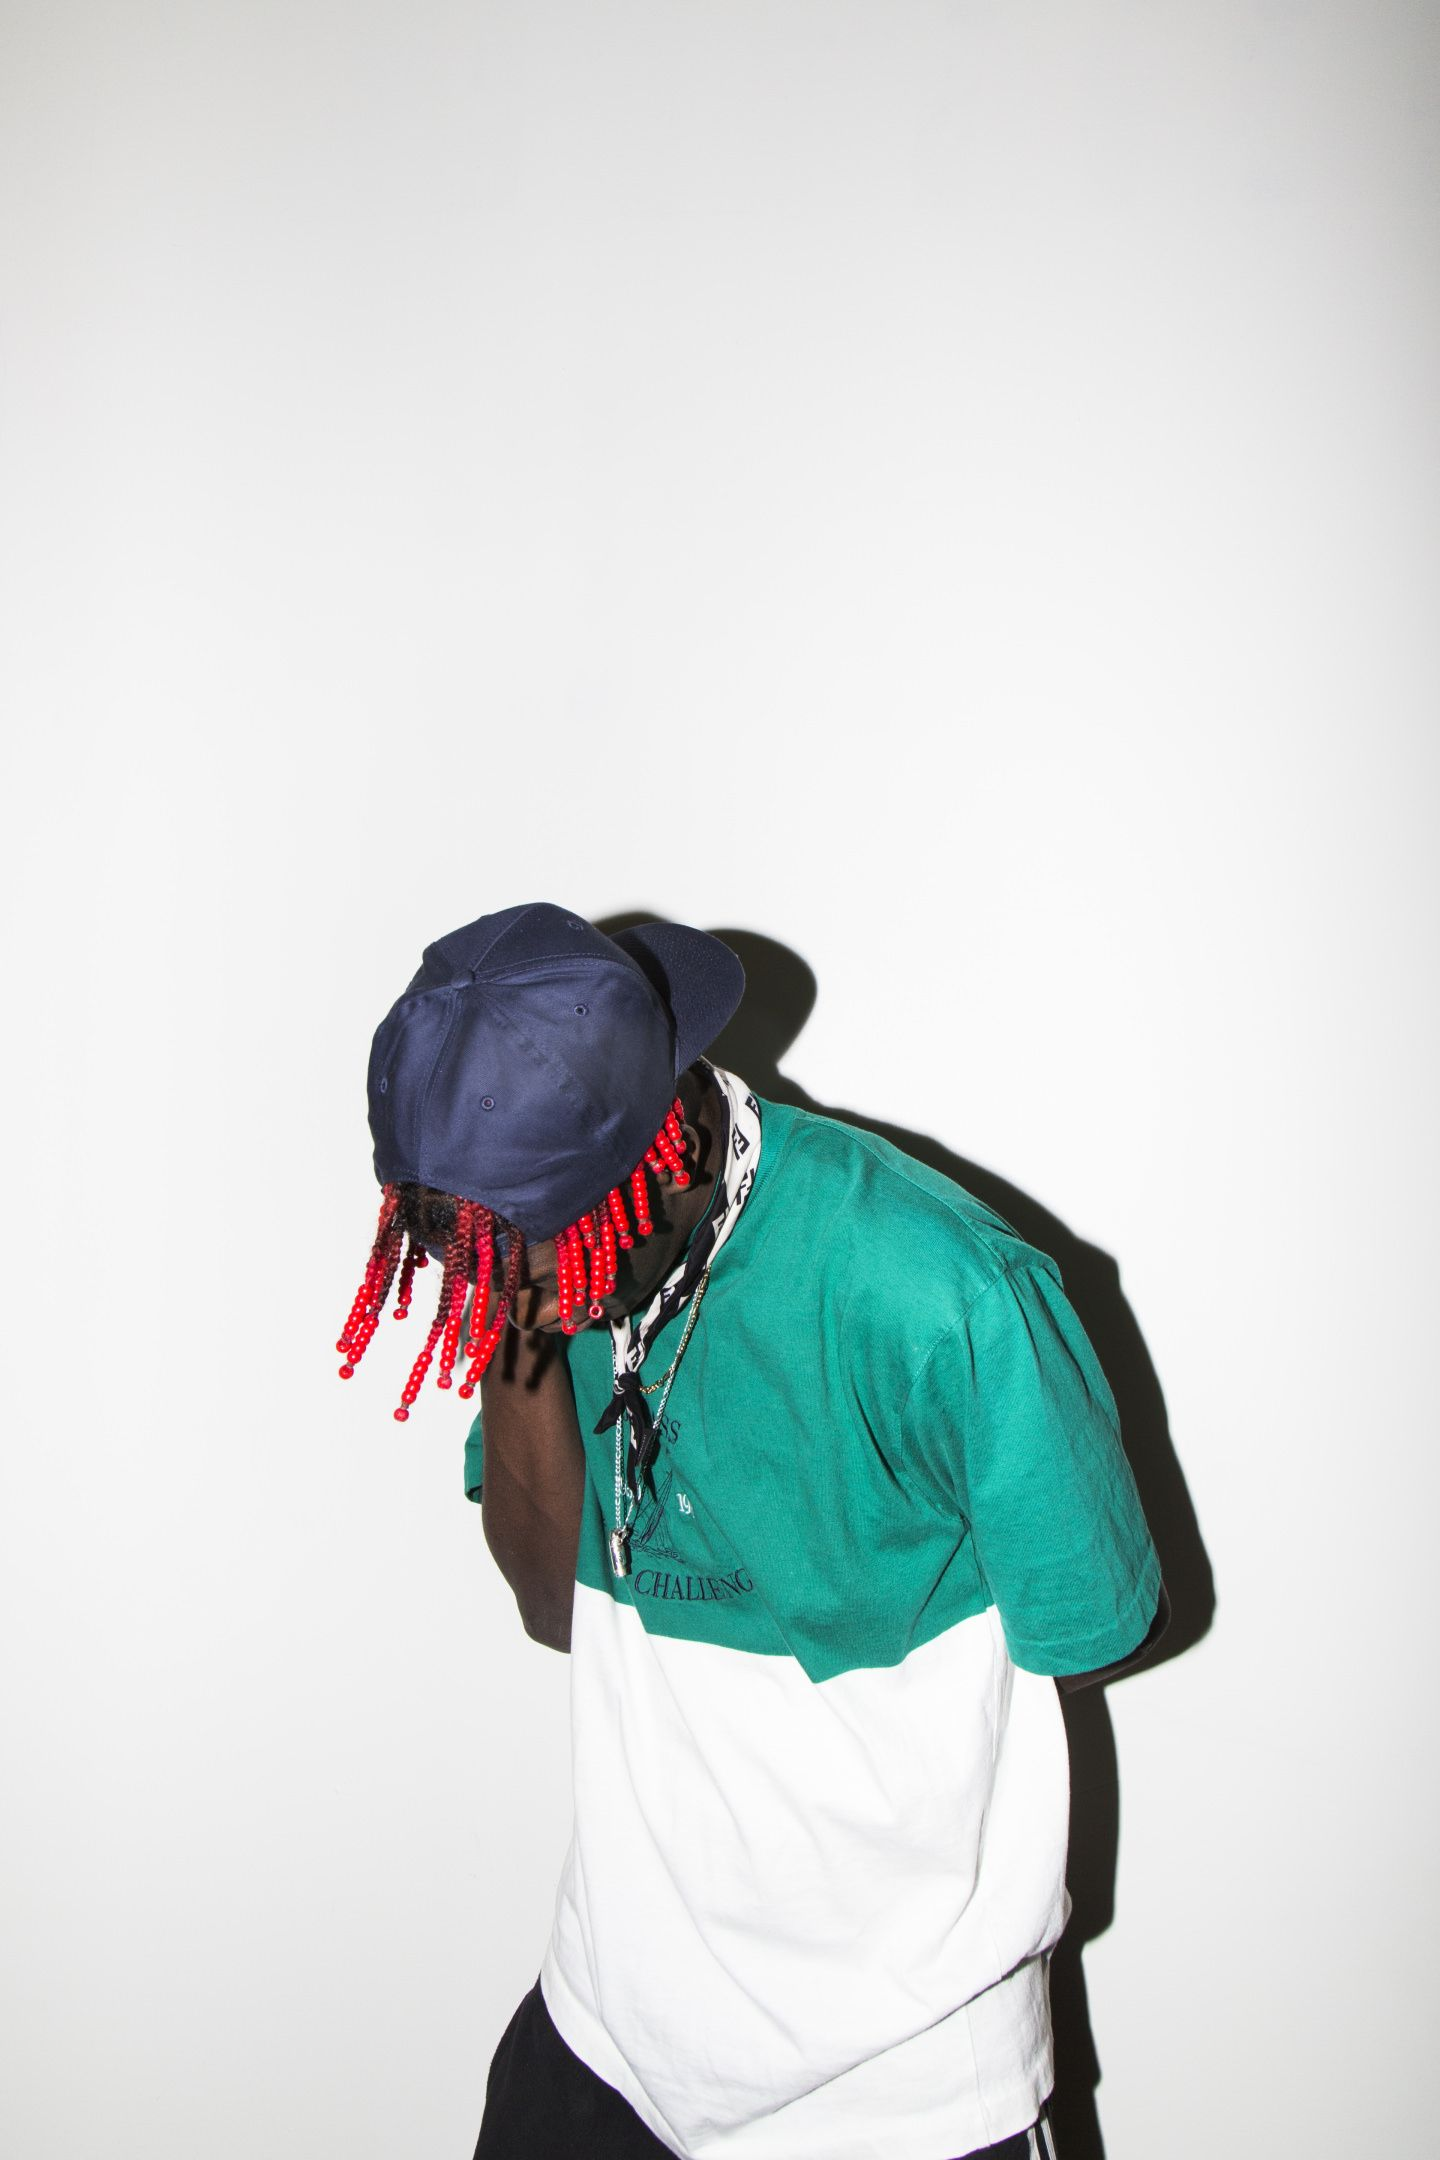 The Things I Carry Lil Yachty click clique click Lil yachty 1440x2160